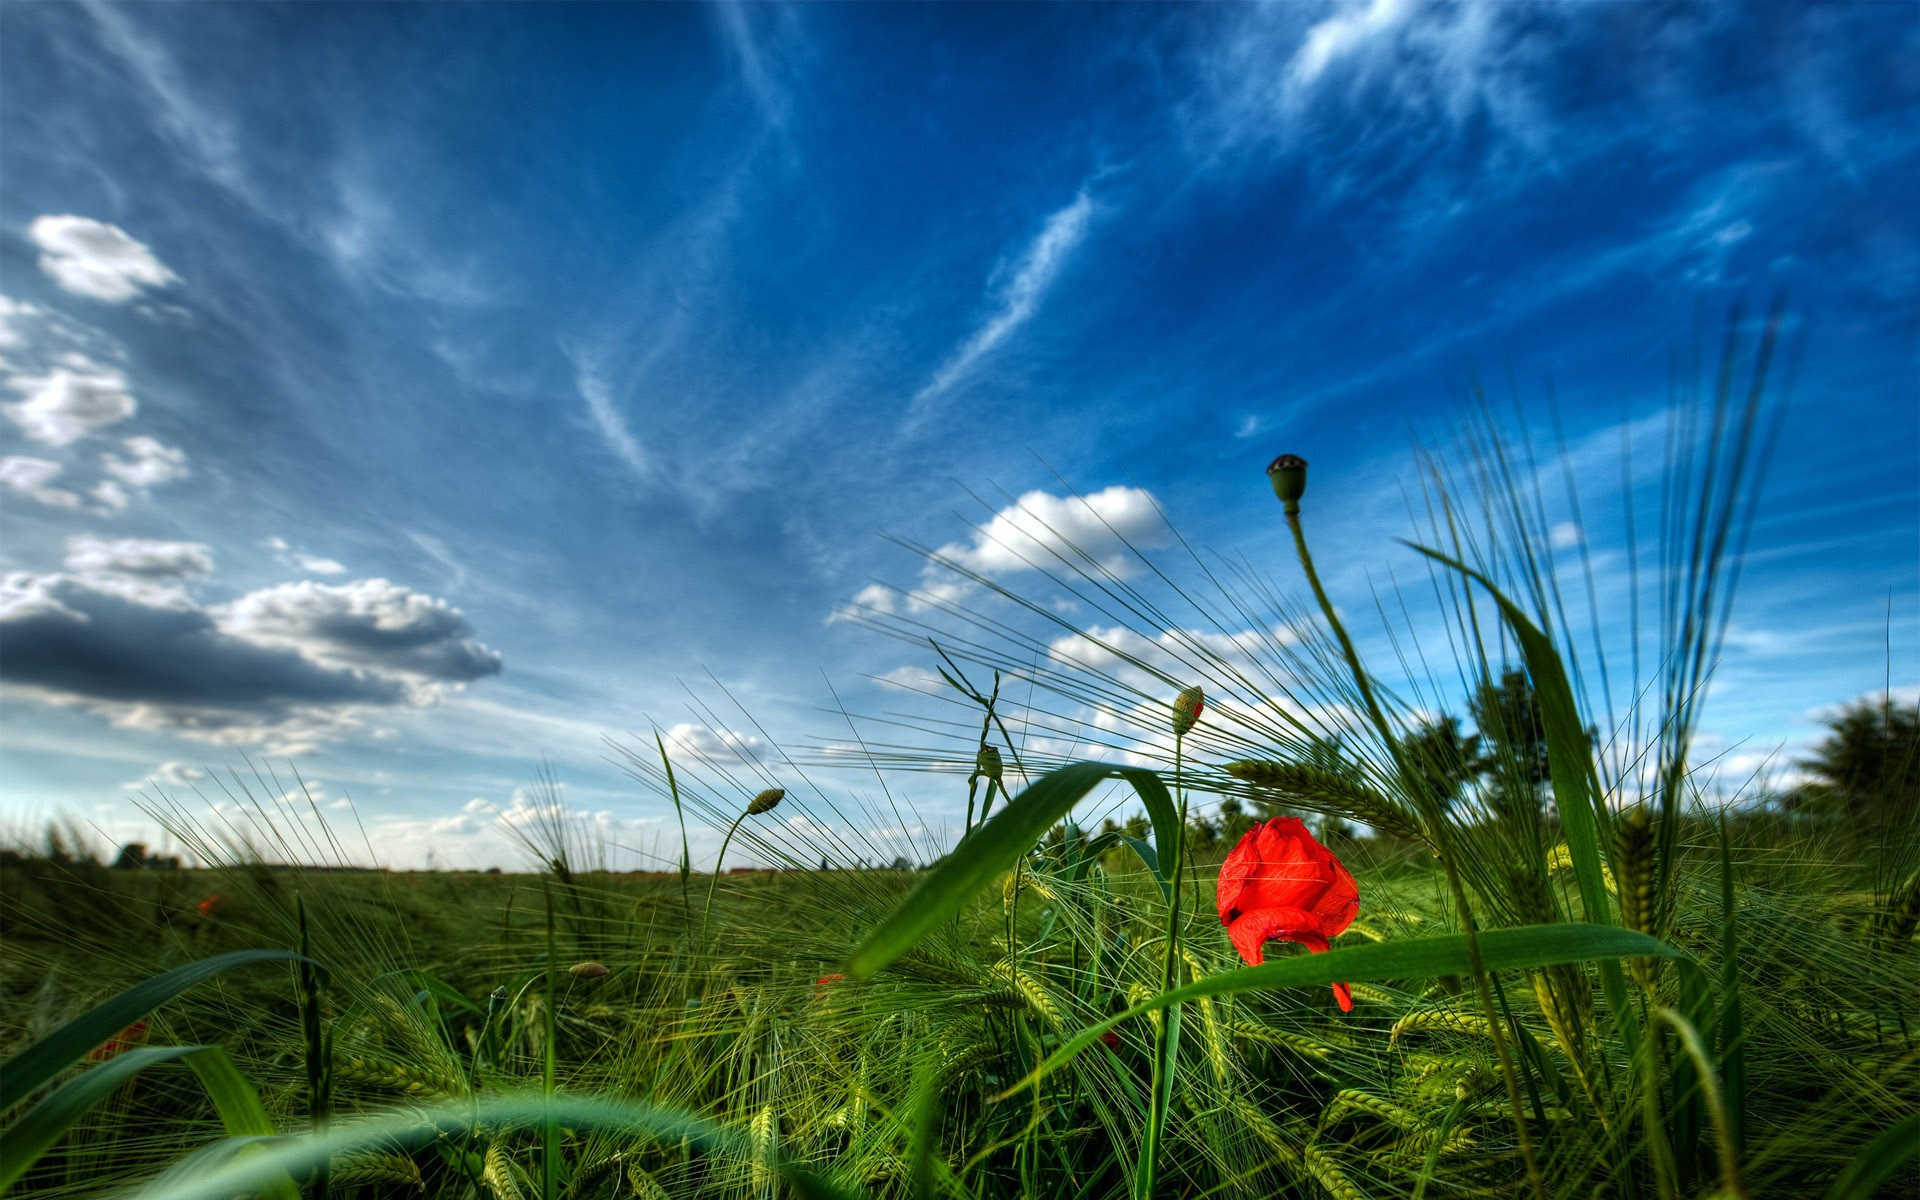 Hd wallpaper sites - Daily Wallpaper Poppy Fields I Like To Waste My Time